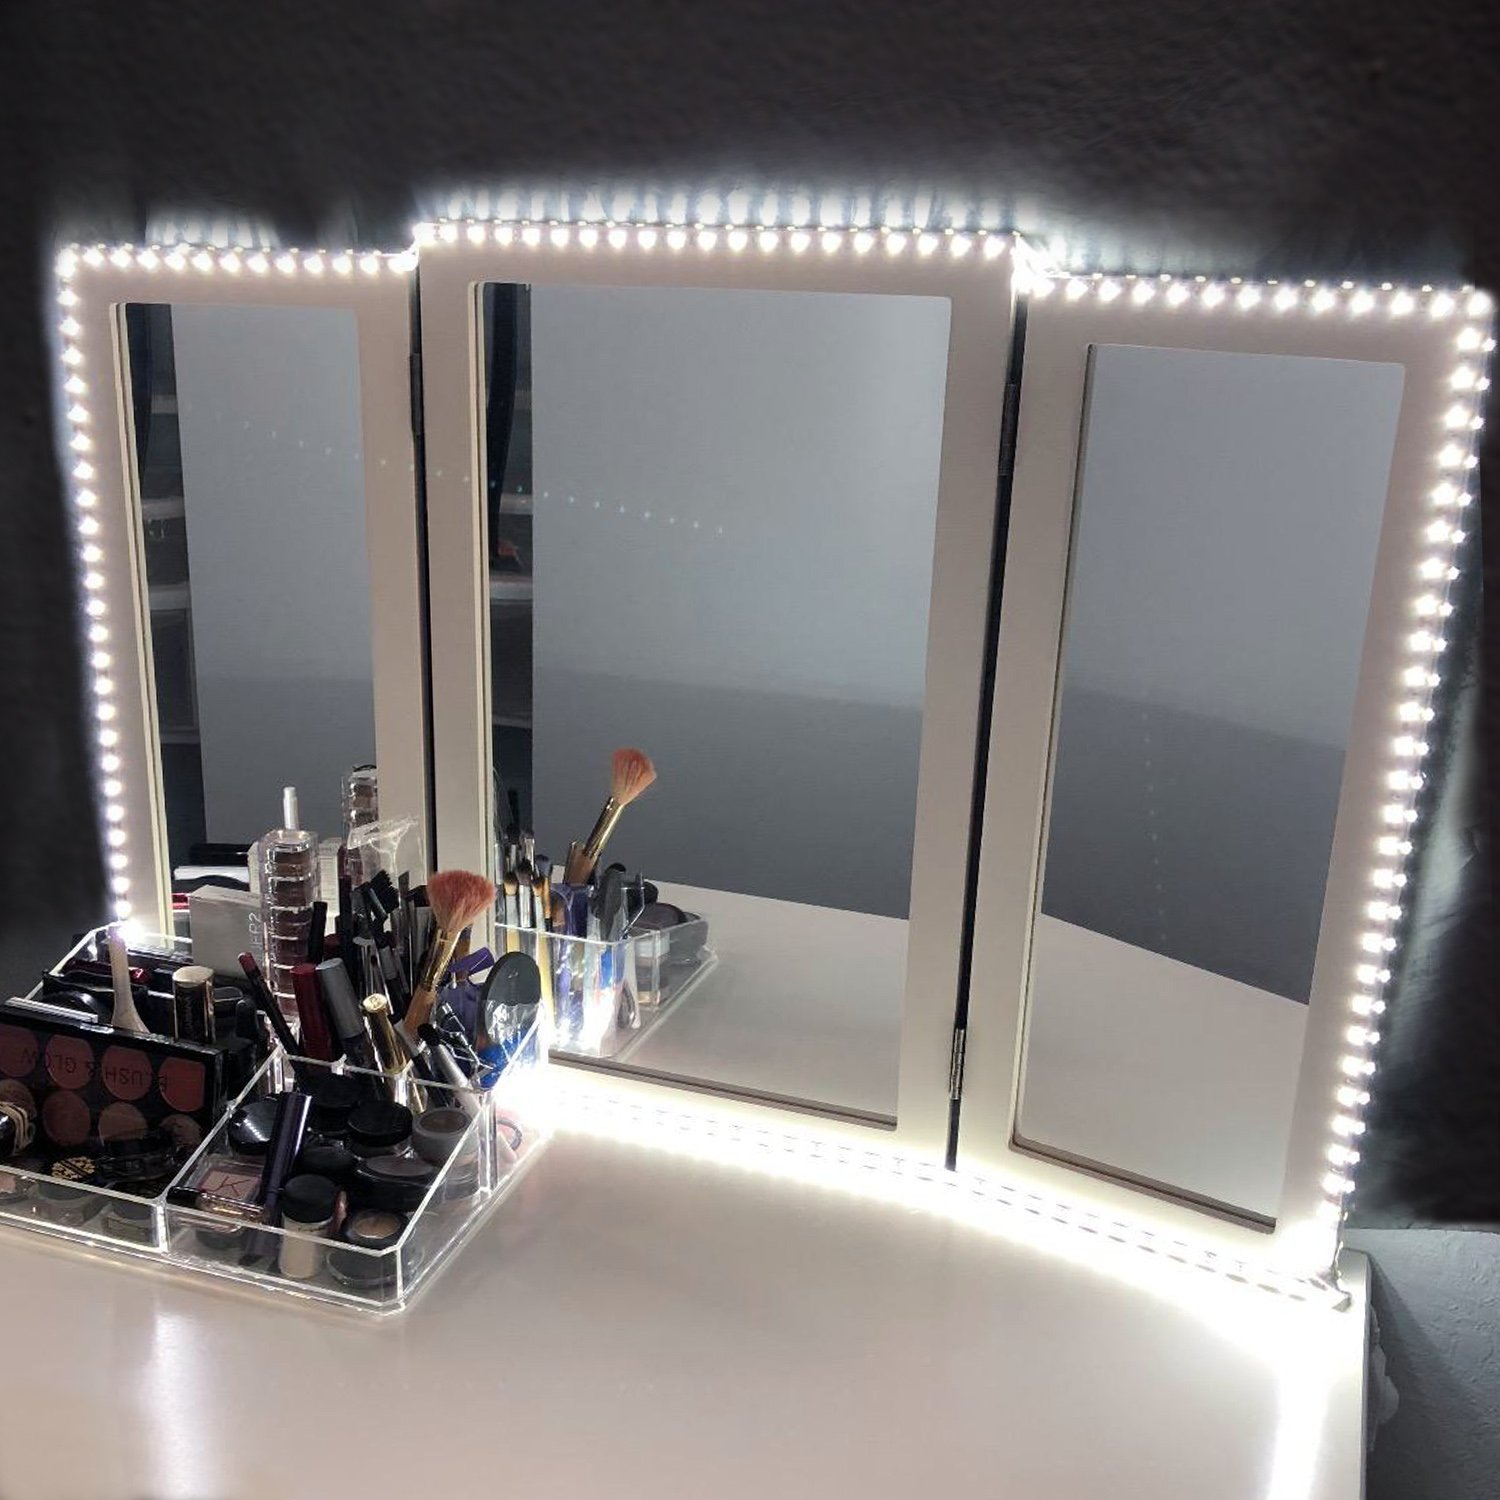 Mirrored Vanity Dressing Table Lights Led ~ Galleon led vanity mirror lights kit for makeup dressing